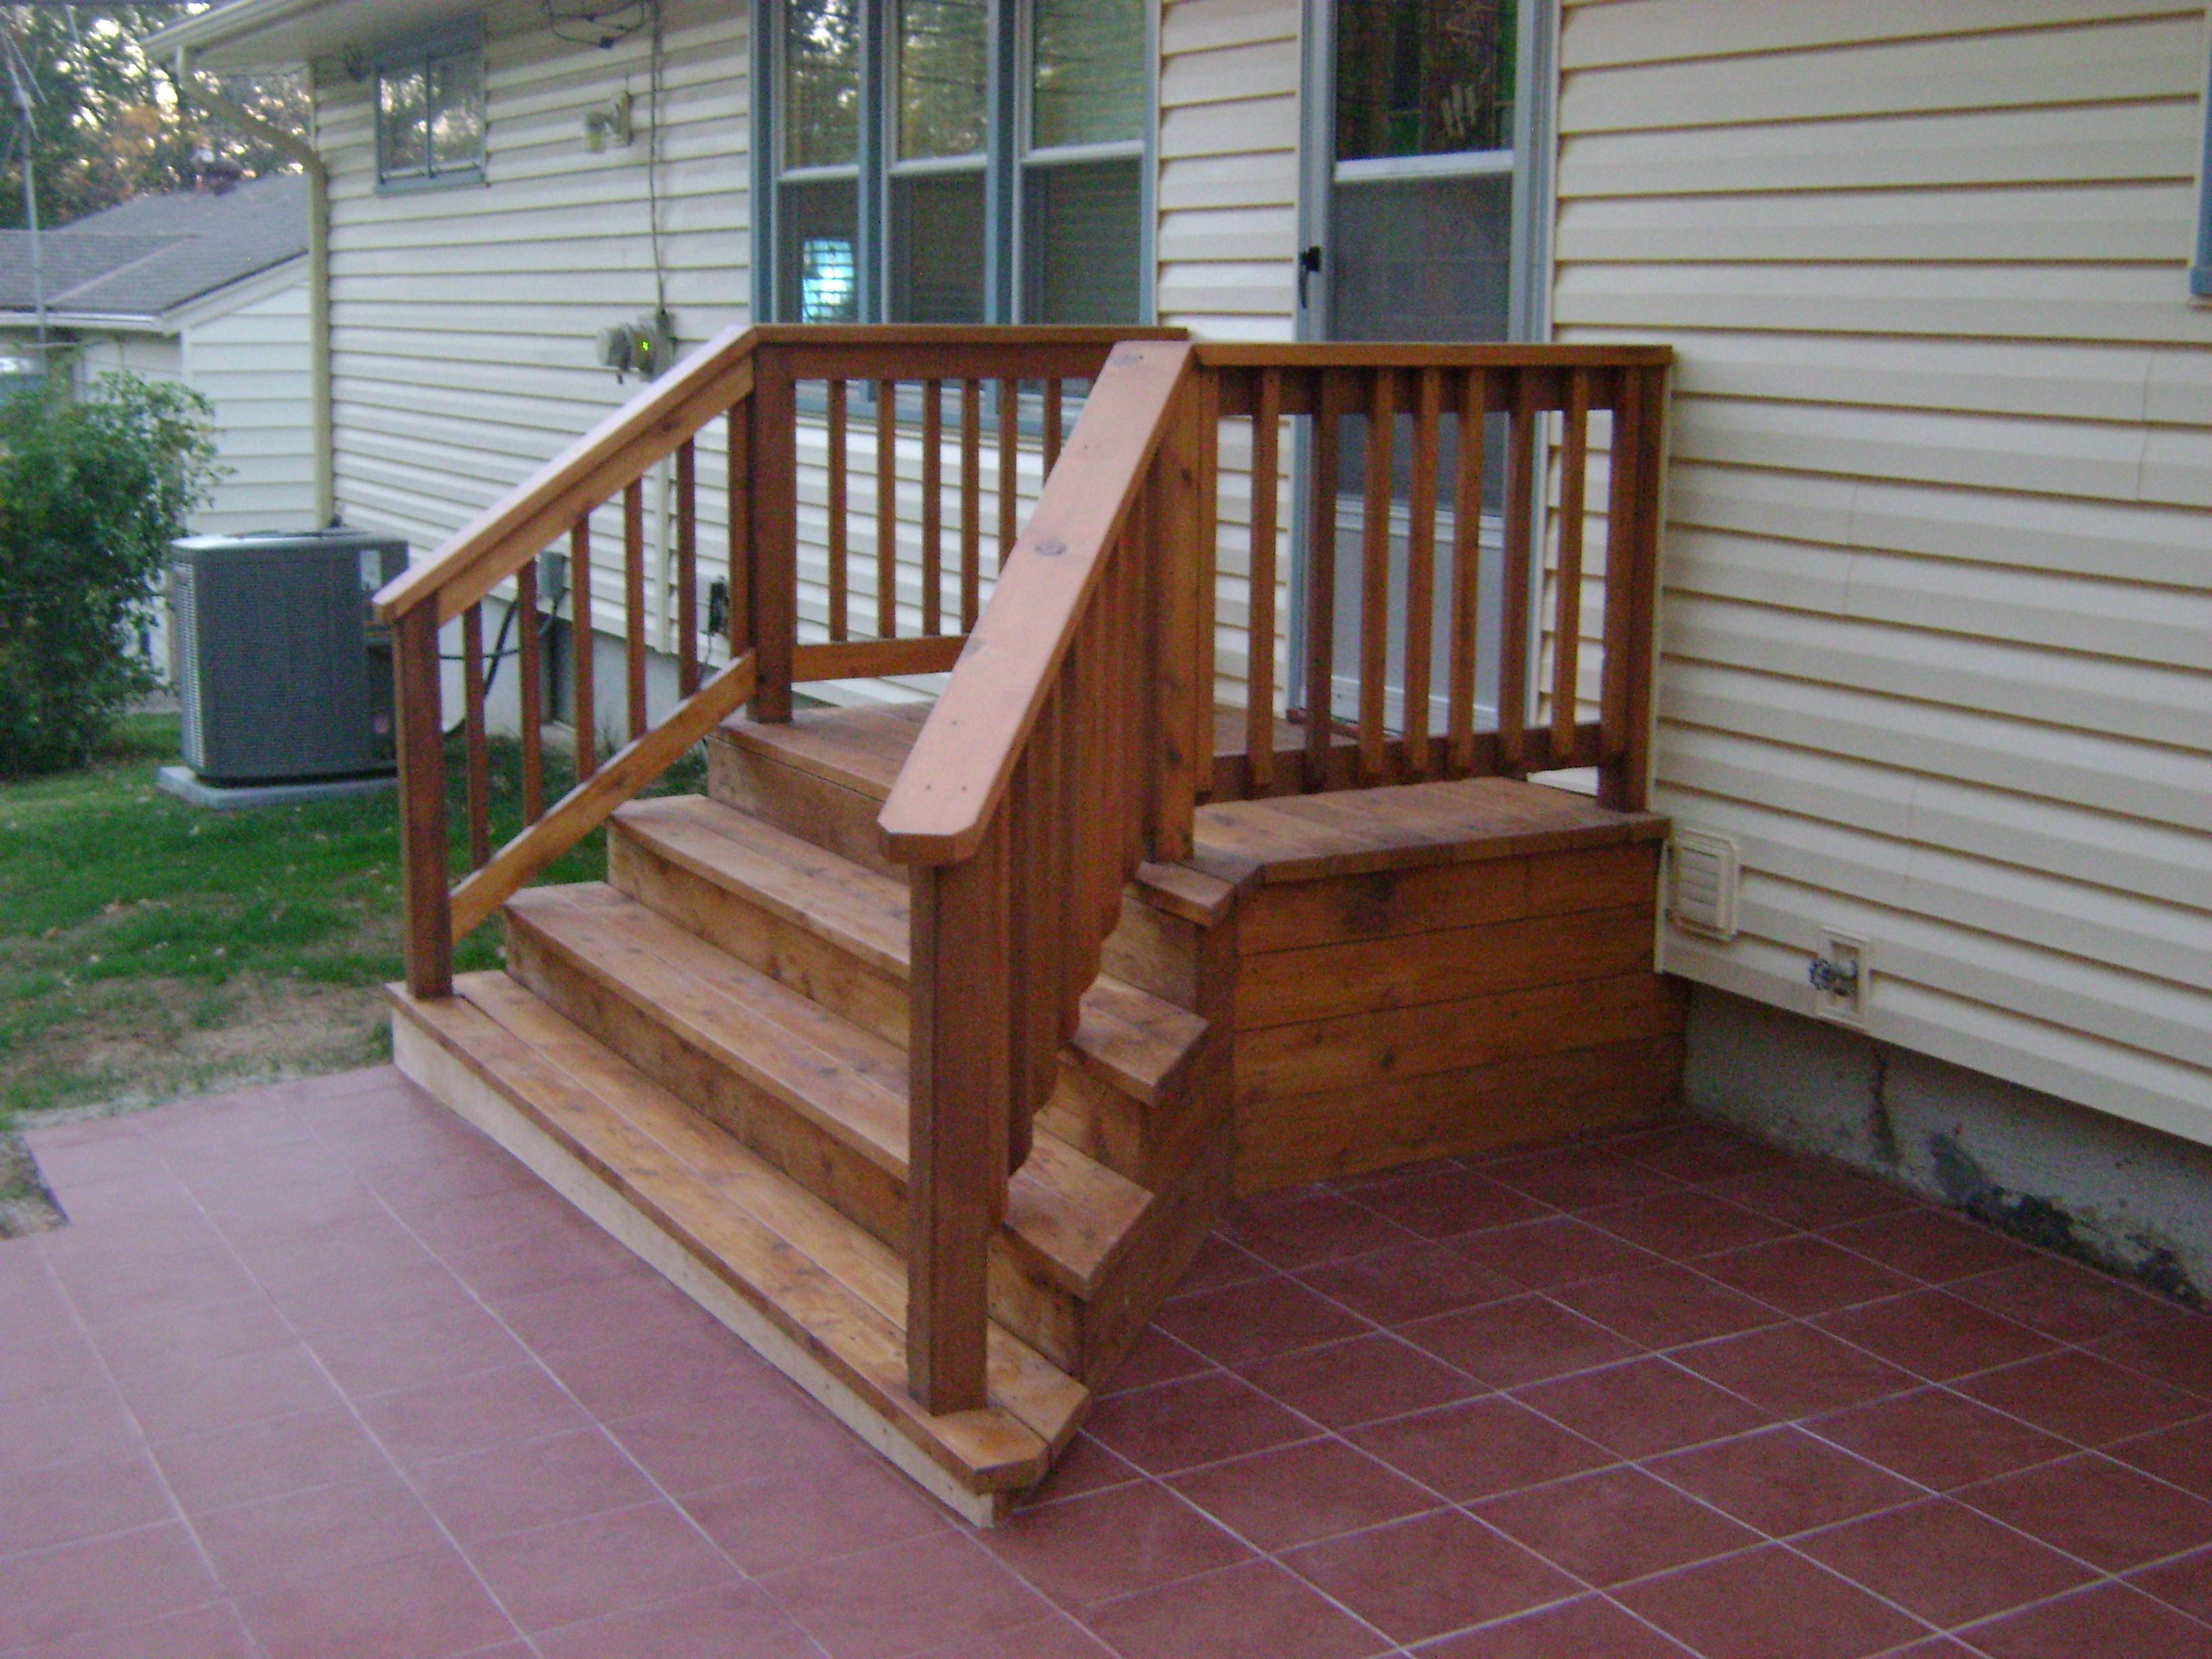 Great While This Homeowner Wanted A Very Small Deck Off The Back, The New Outdoor  Tile